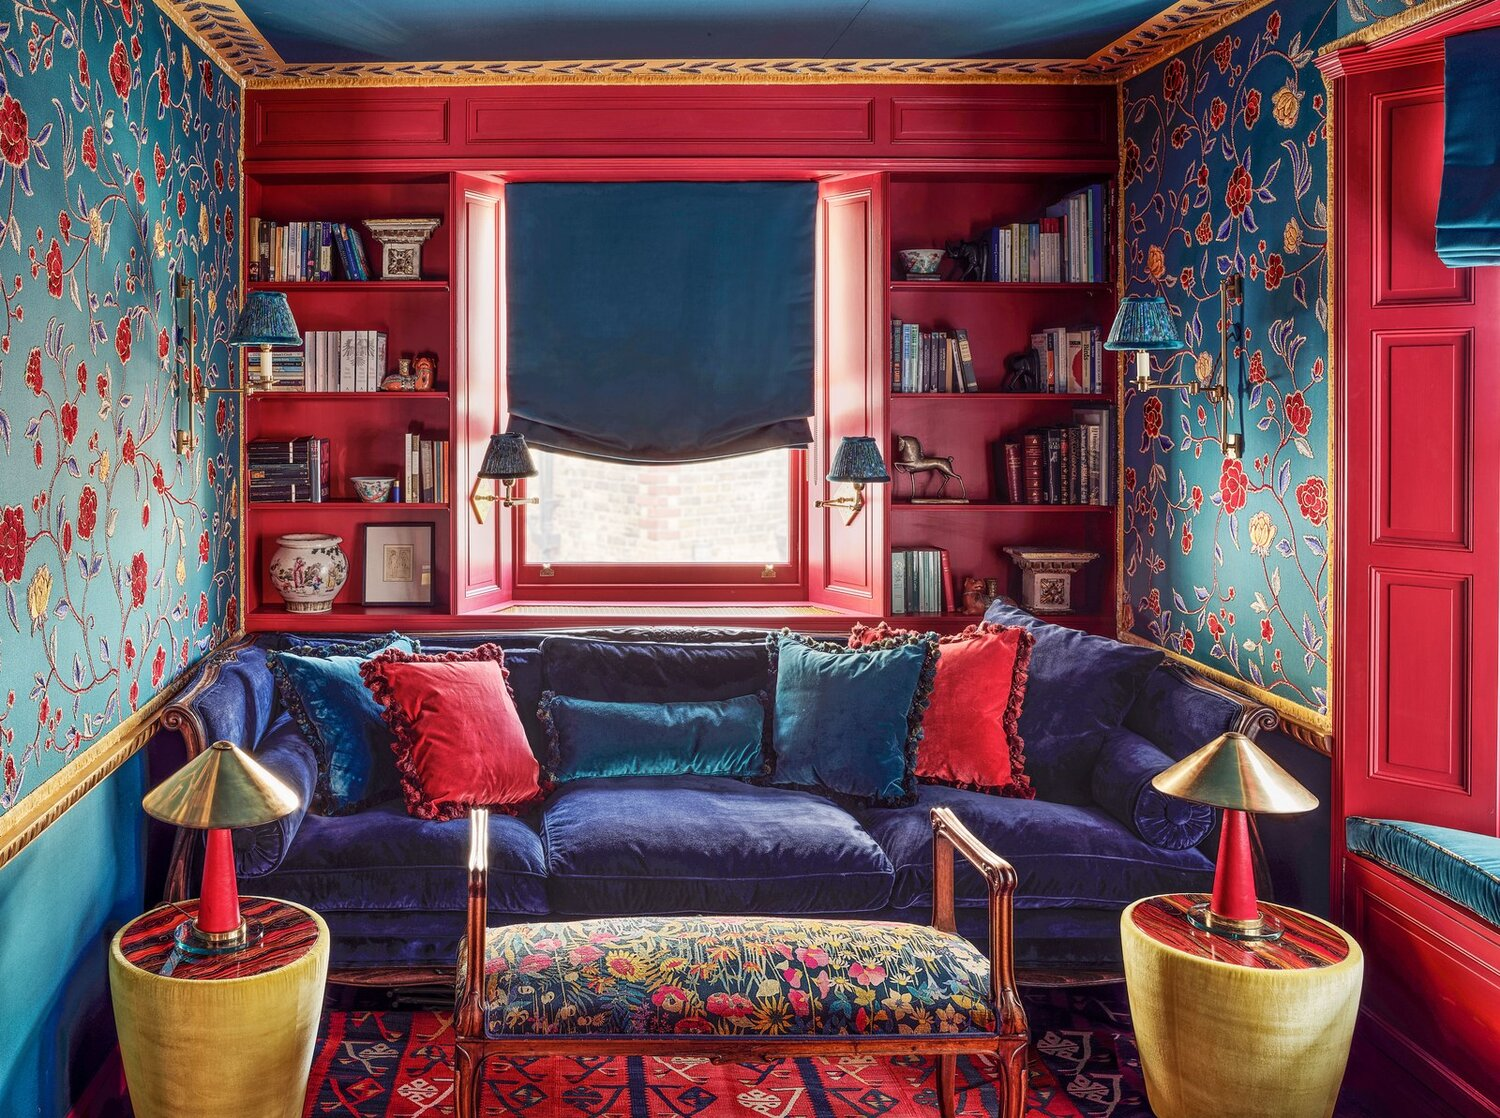 The Nordroom - A Colorful London Home with De Gournay Wallpaper in Every Room